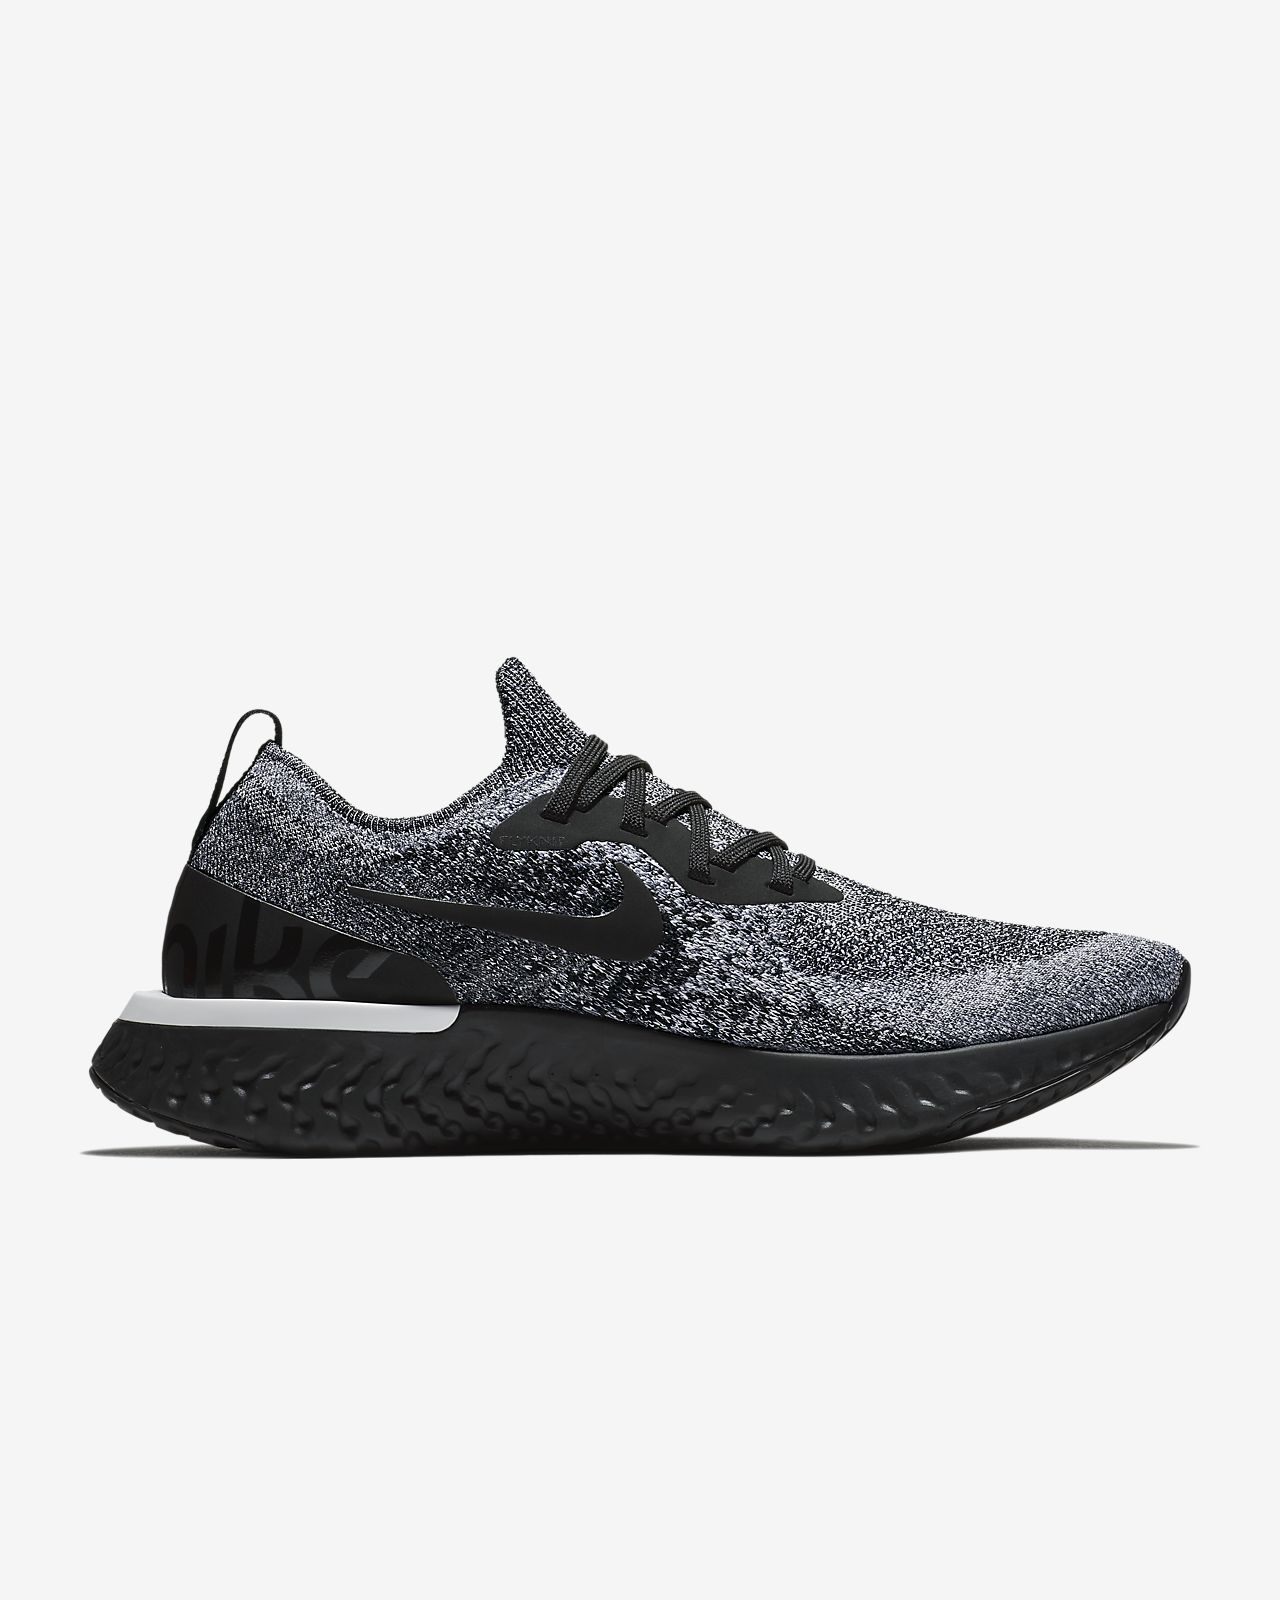 537a49a1d1b8e Nike Epic React Flyknit Men s Running Shoe. Nike.com ID